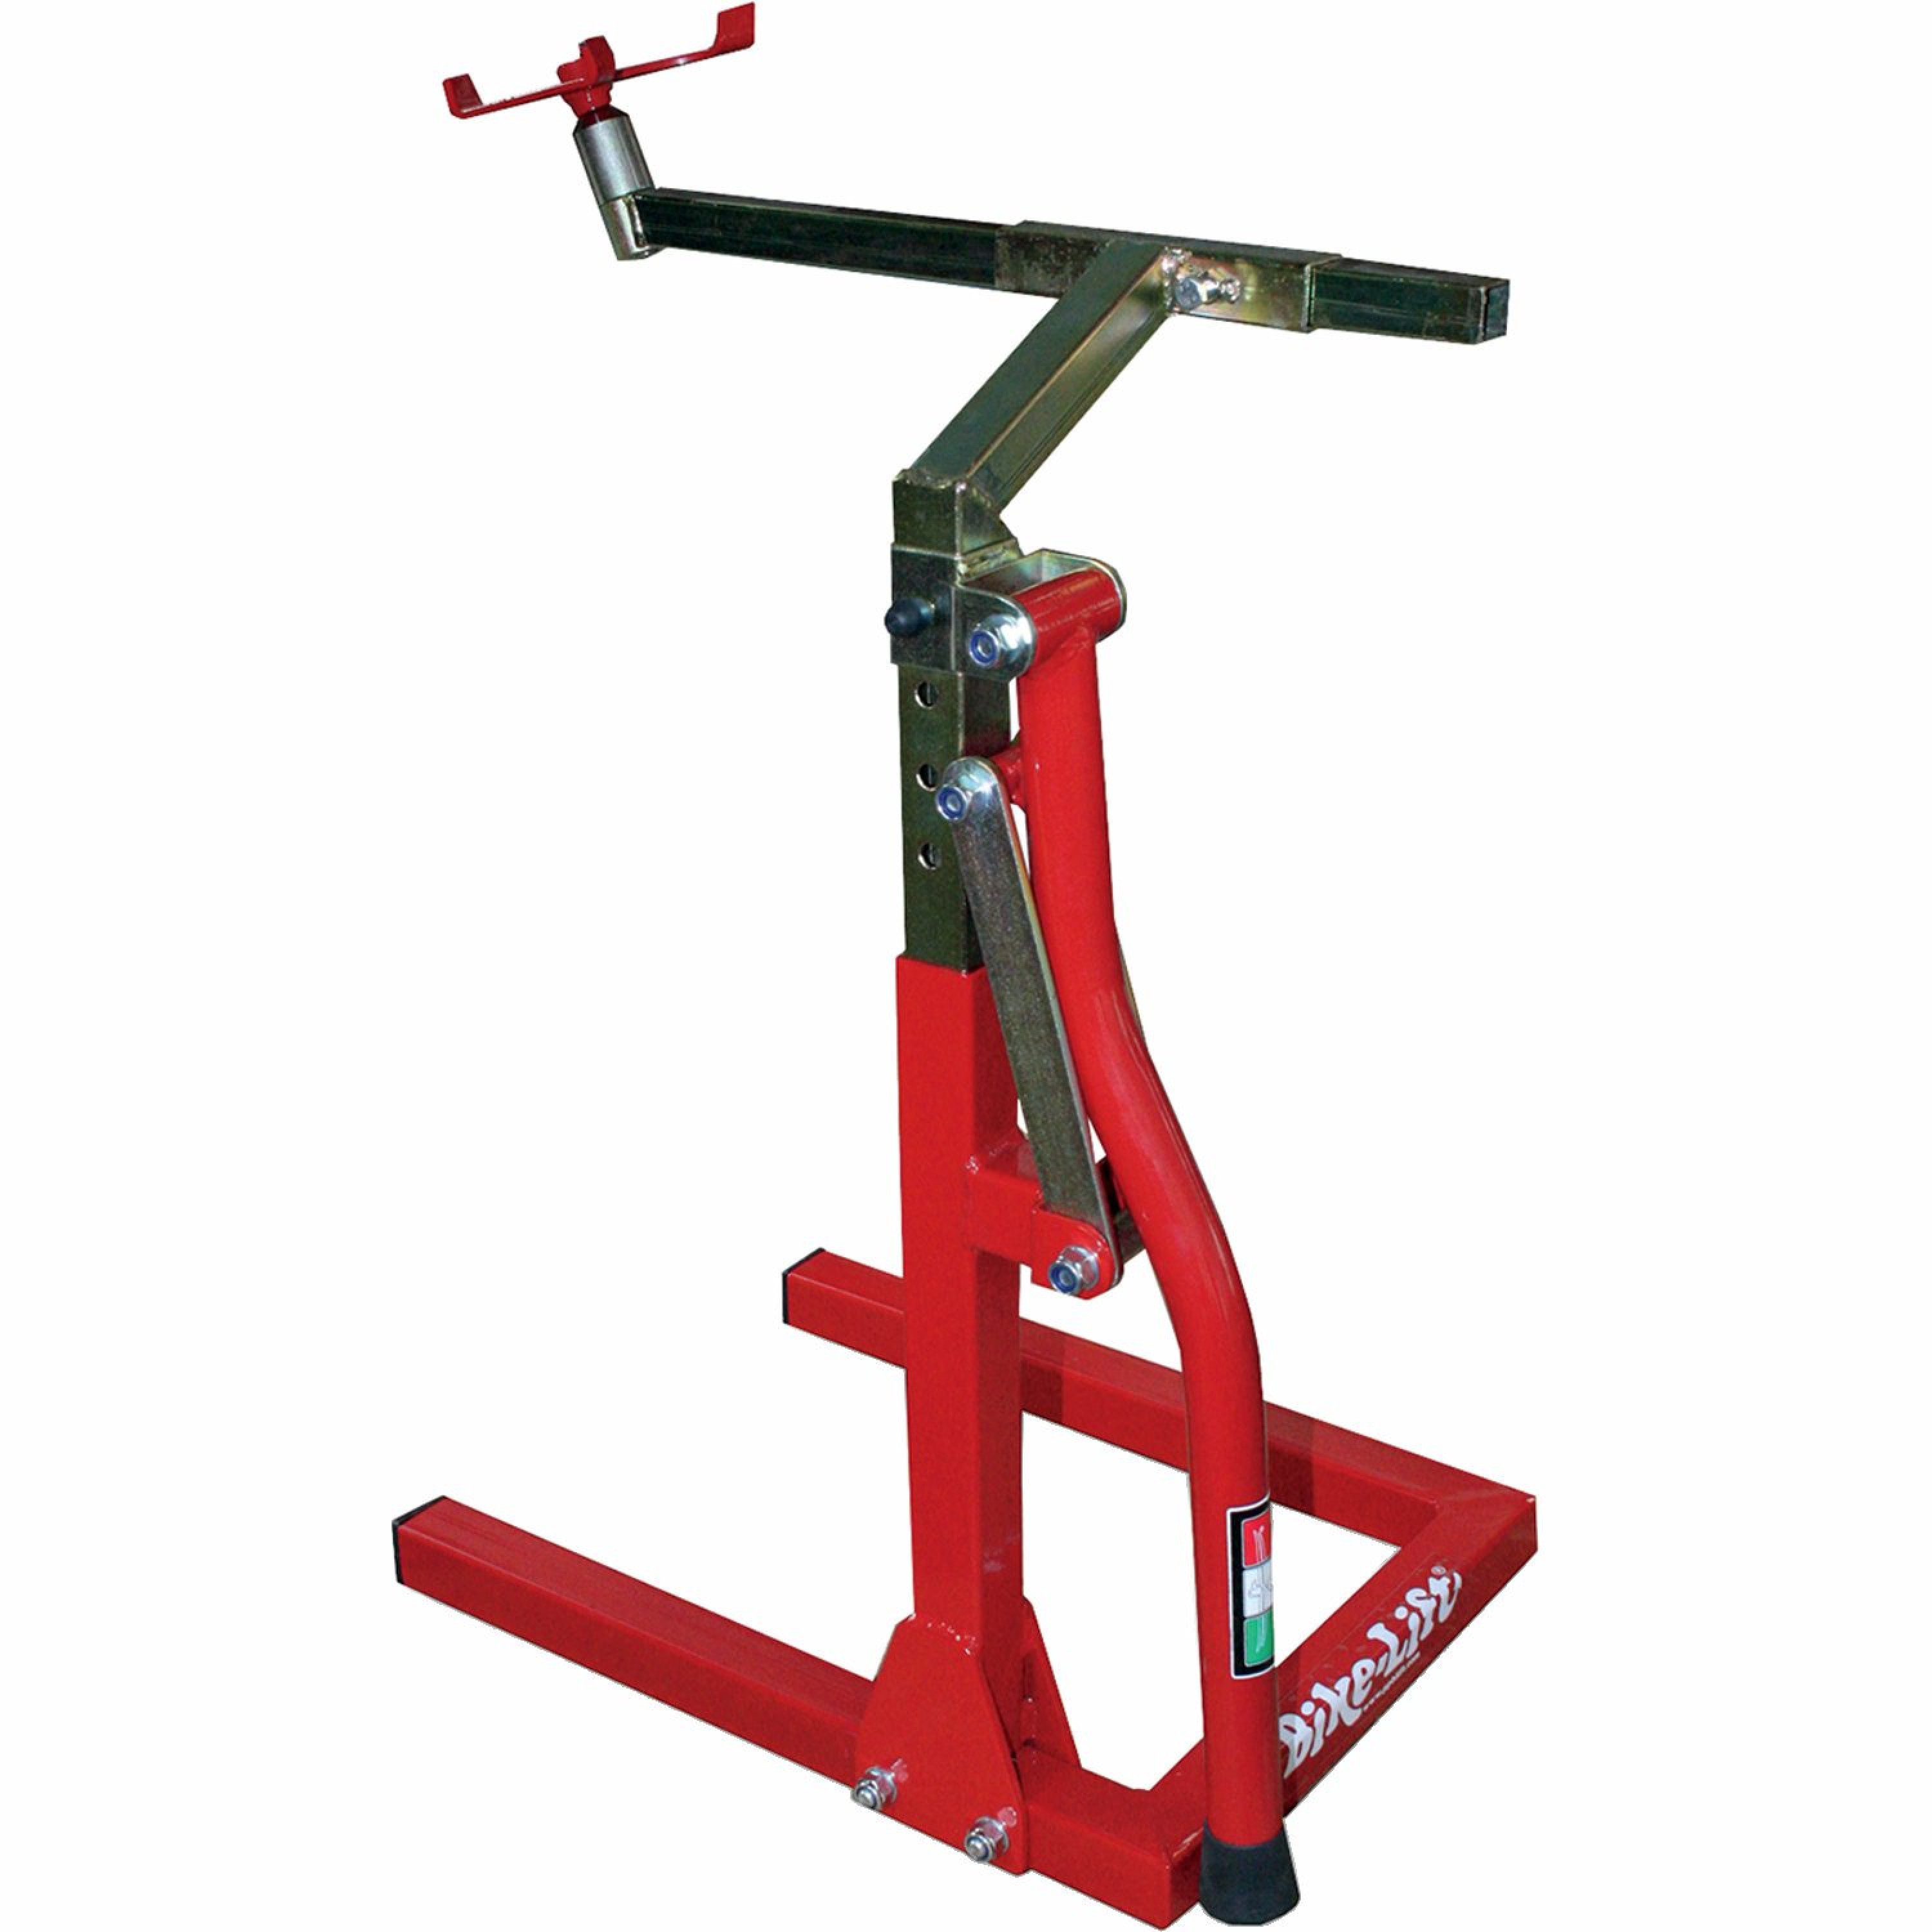 FRONT STAND B-LIFT FS-11